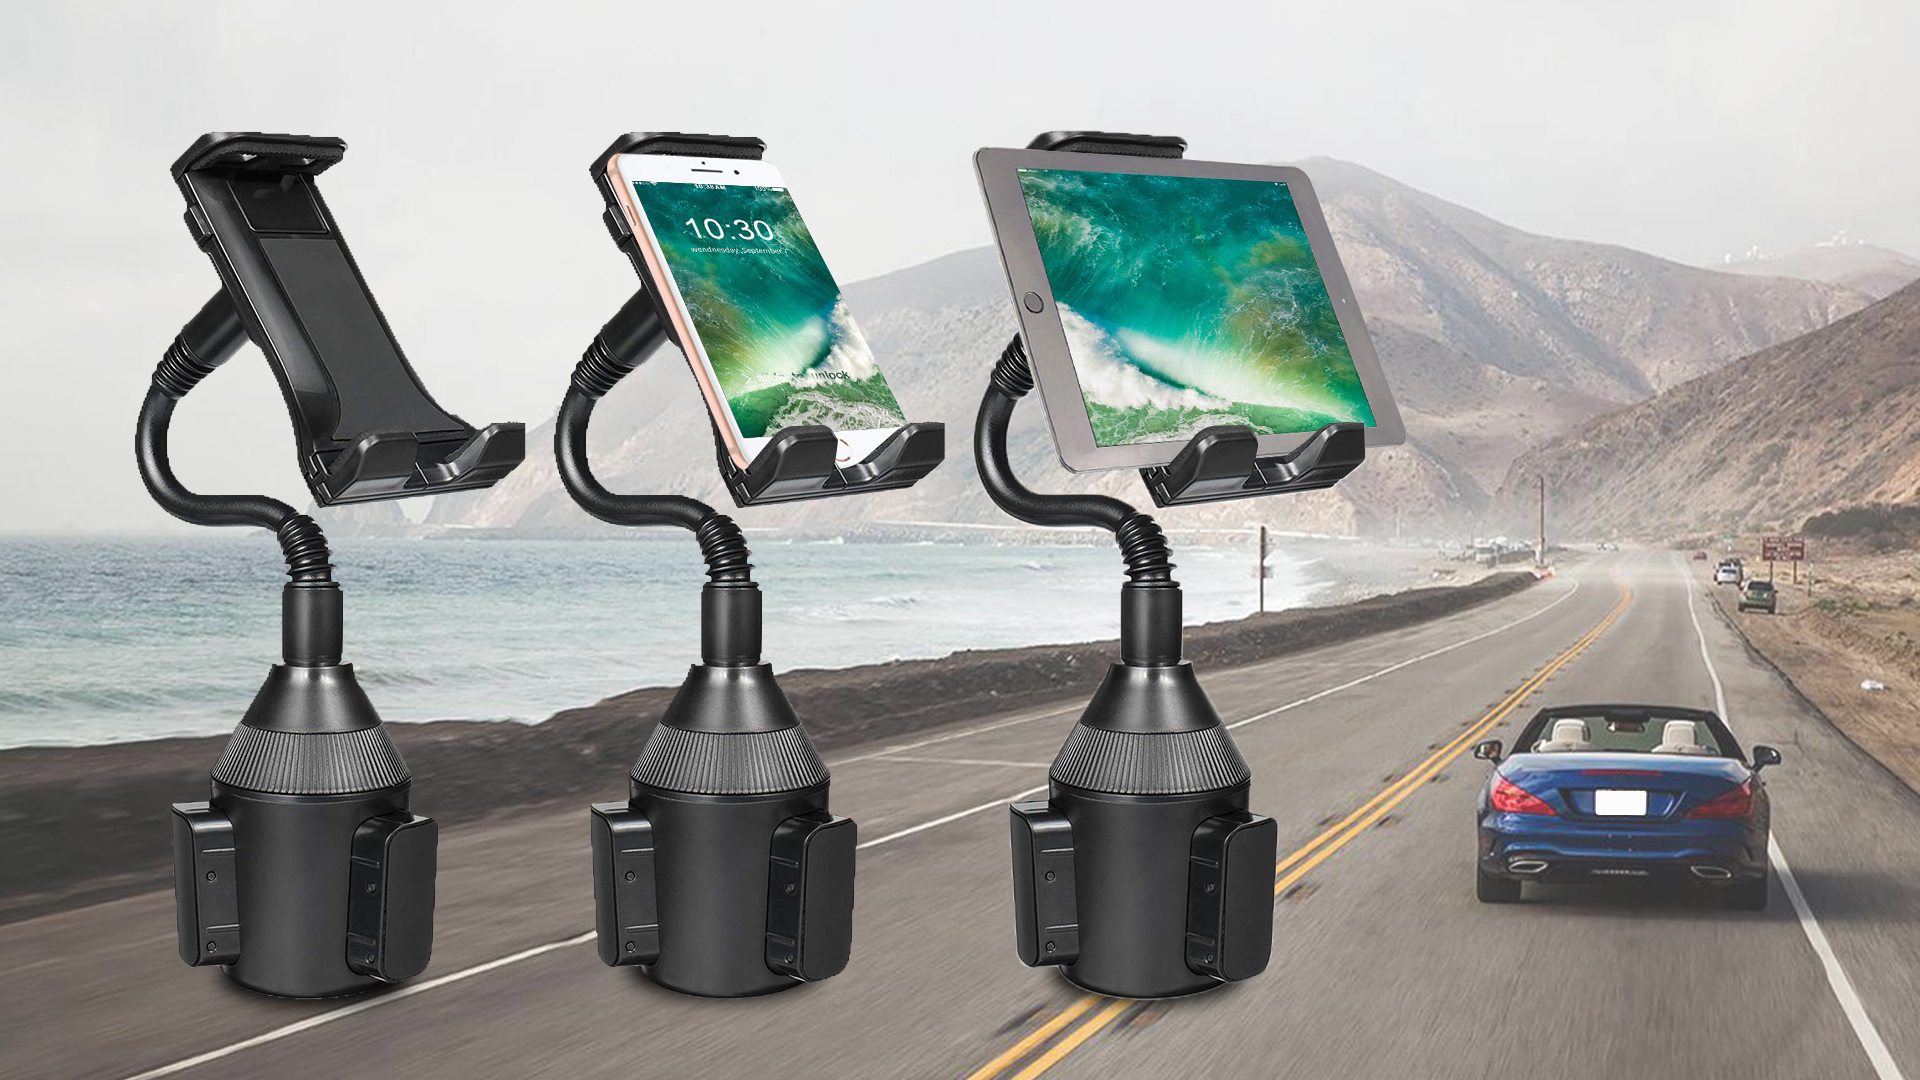 Apple iPad Pro 10.5 9.7 Air Mini iPhone 11 Pro Xs Max XR X /& Mobile Device Up to 8 Wide Samsung Galaxy Tab Works as Cup Holder Tablet Mount and Phone Macally Heavy-Duty Tablet Holder for Car